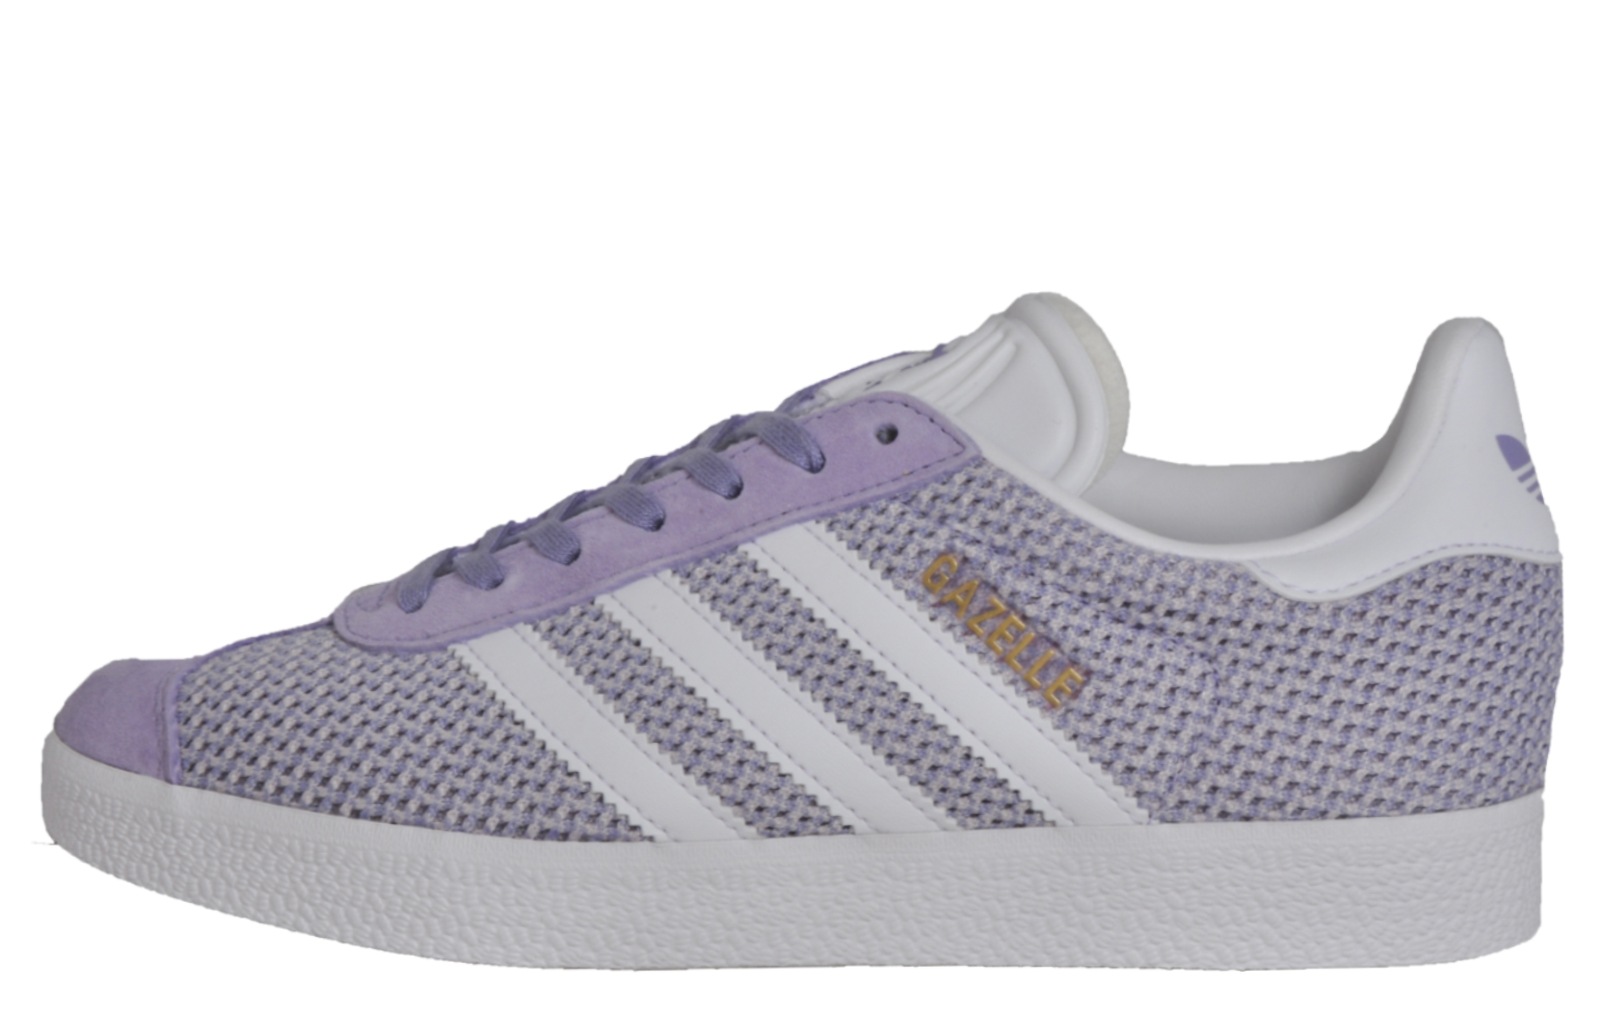 promo code 90ad1 3c7f0 Adidas Originals Gazelle Womens - AD163329. alternate view 2